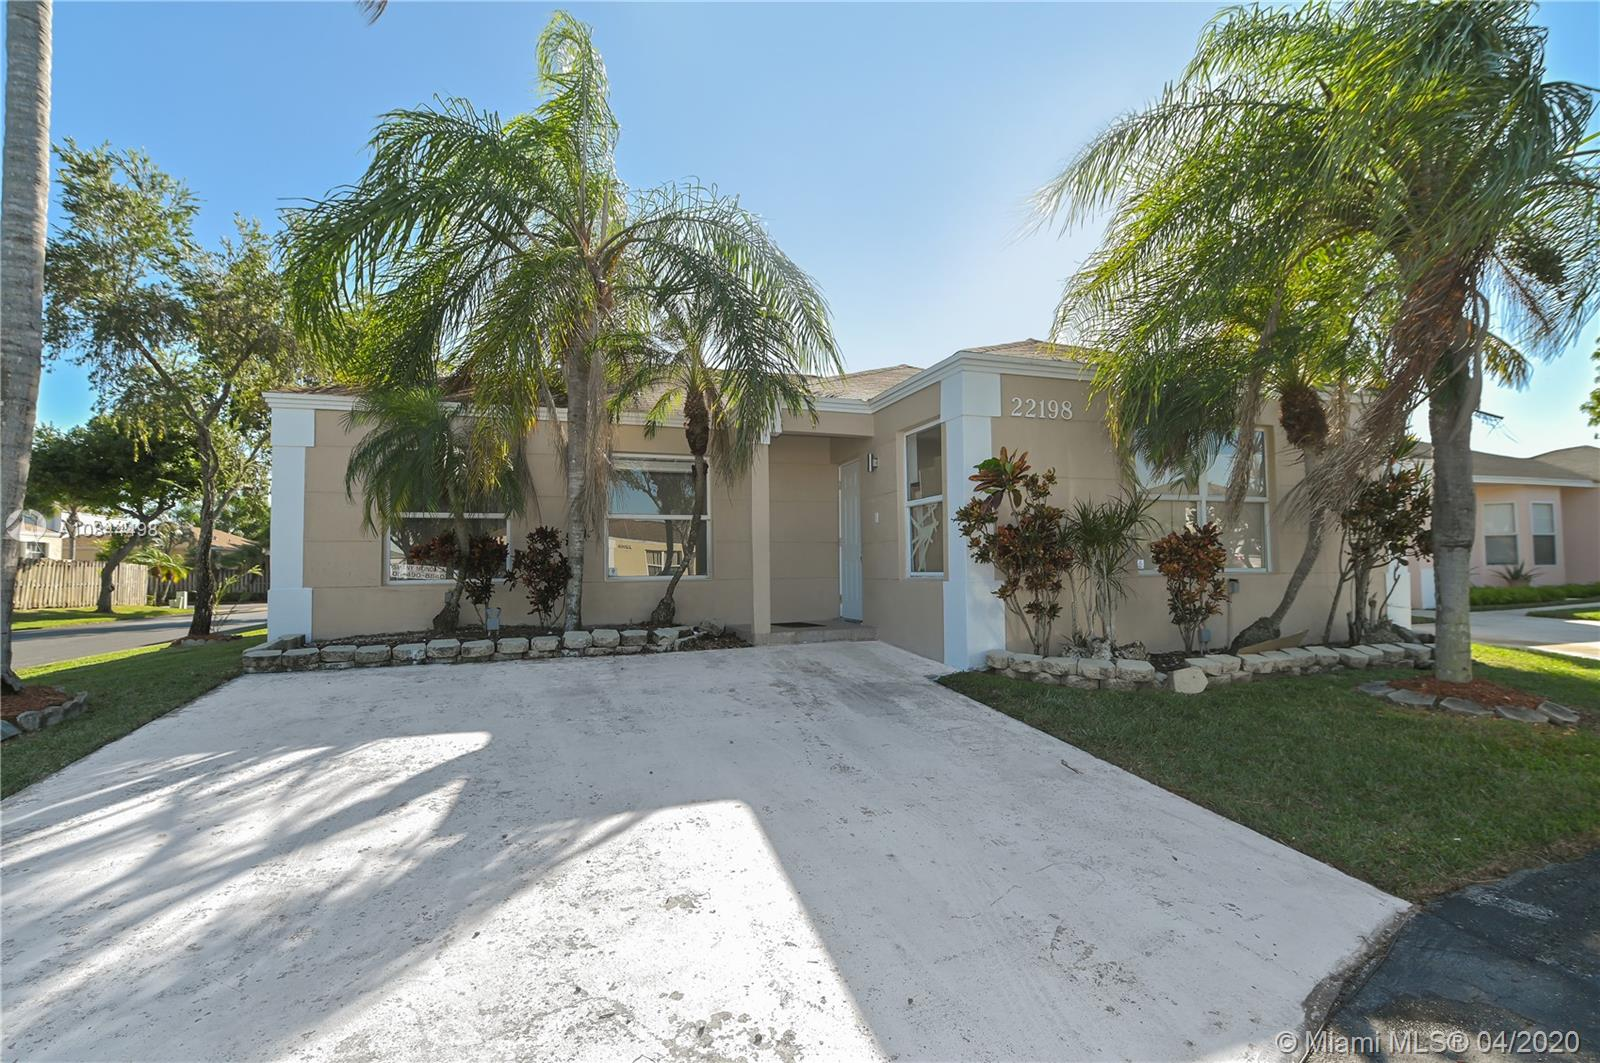 22198 SW 98th Pl, Cutler Bay, Florida 33190, 3 Bedrooms Bedrooms, ,2 BathroomsBathrooms,Residential,For Sale,22198 SW 98th Pl,A10844498